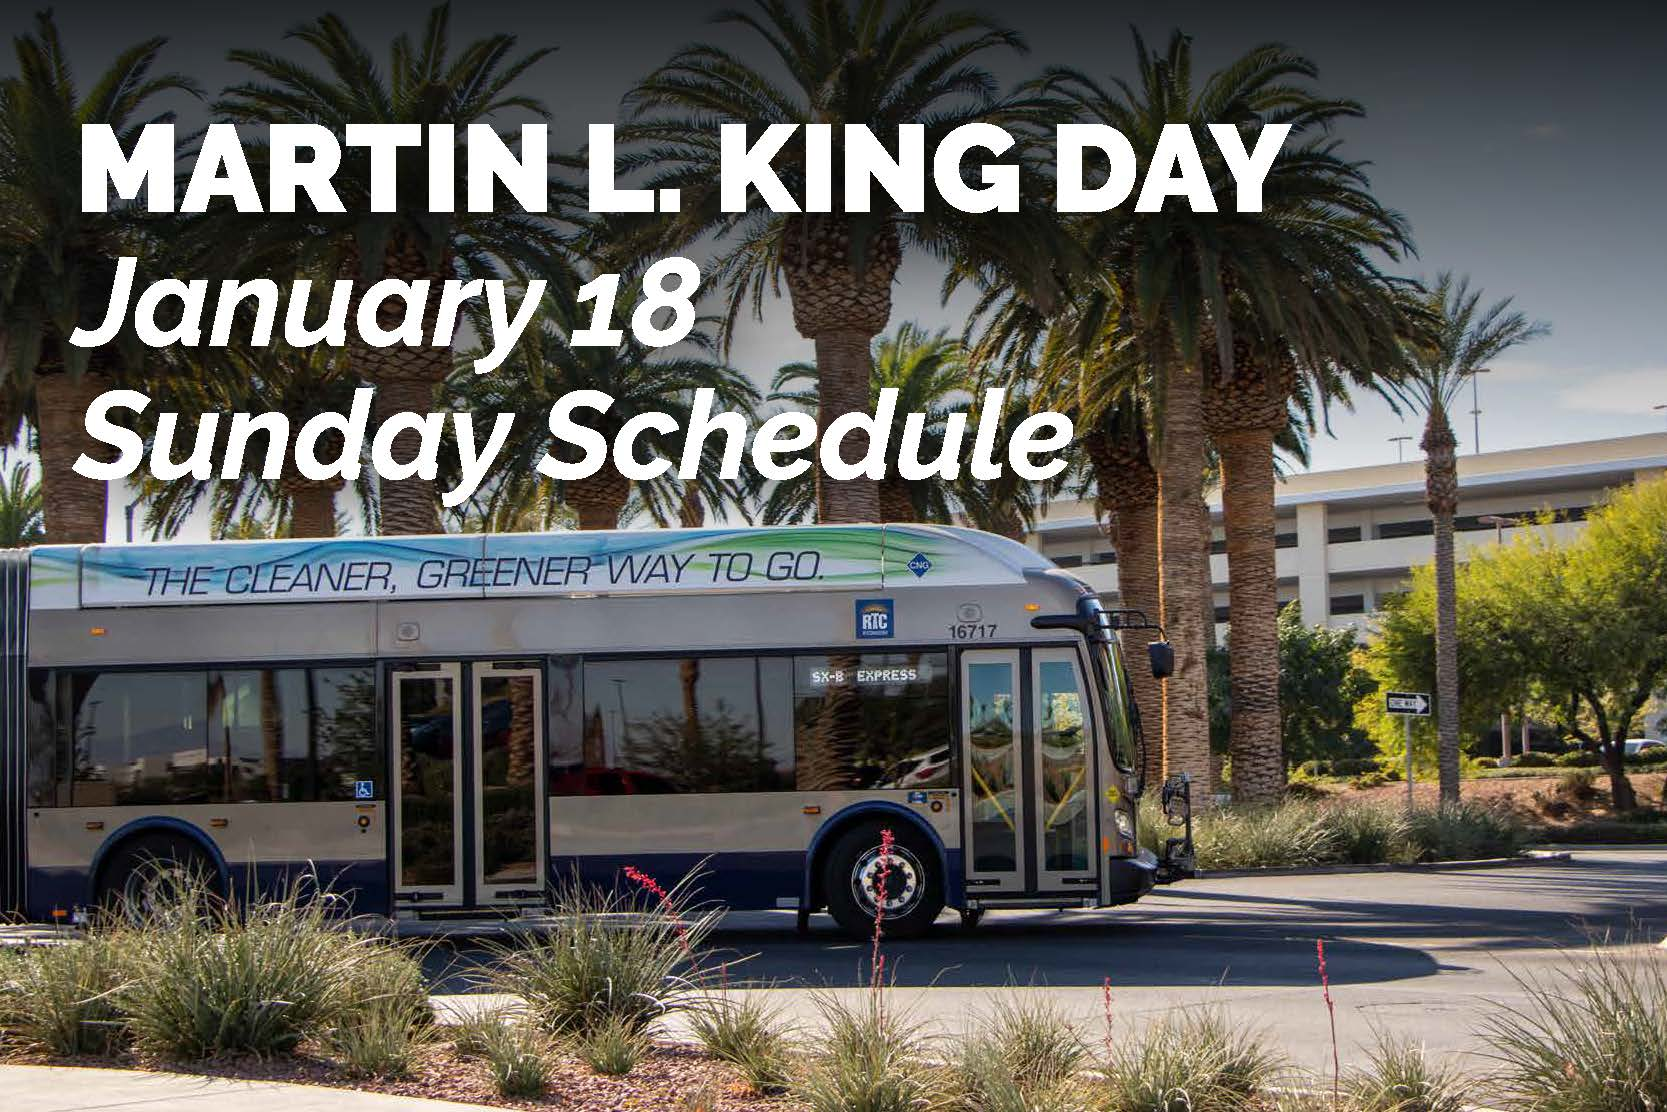 RTC to operate on Sunday transit schedule, participate in virtual parade celebration for Martin Luther King Jr. Day holiday